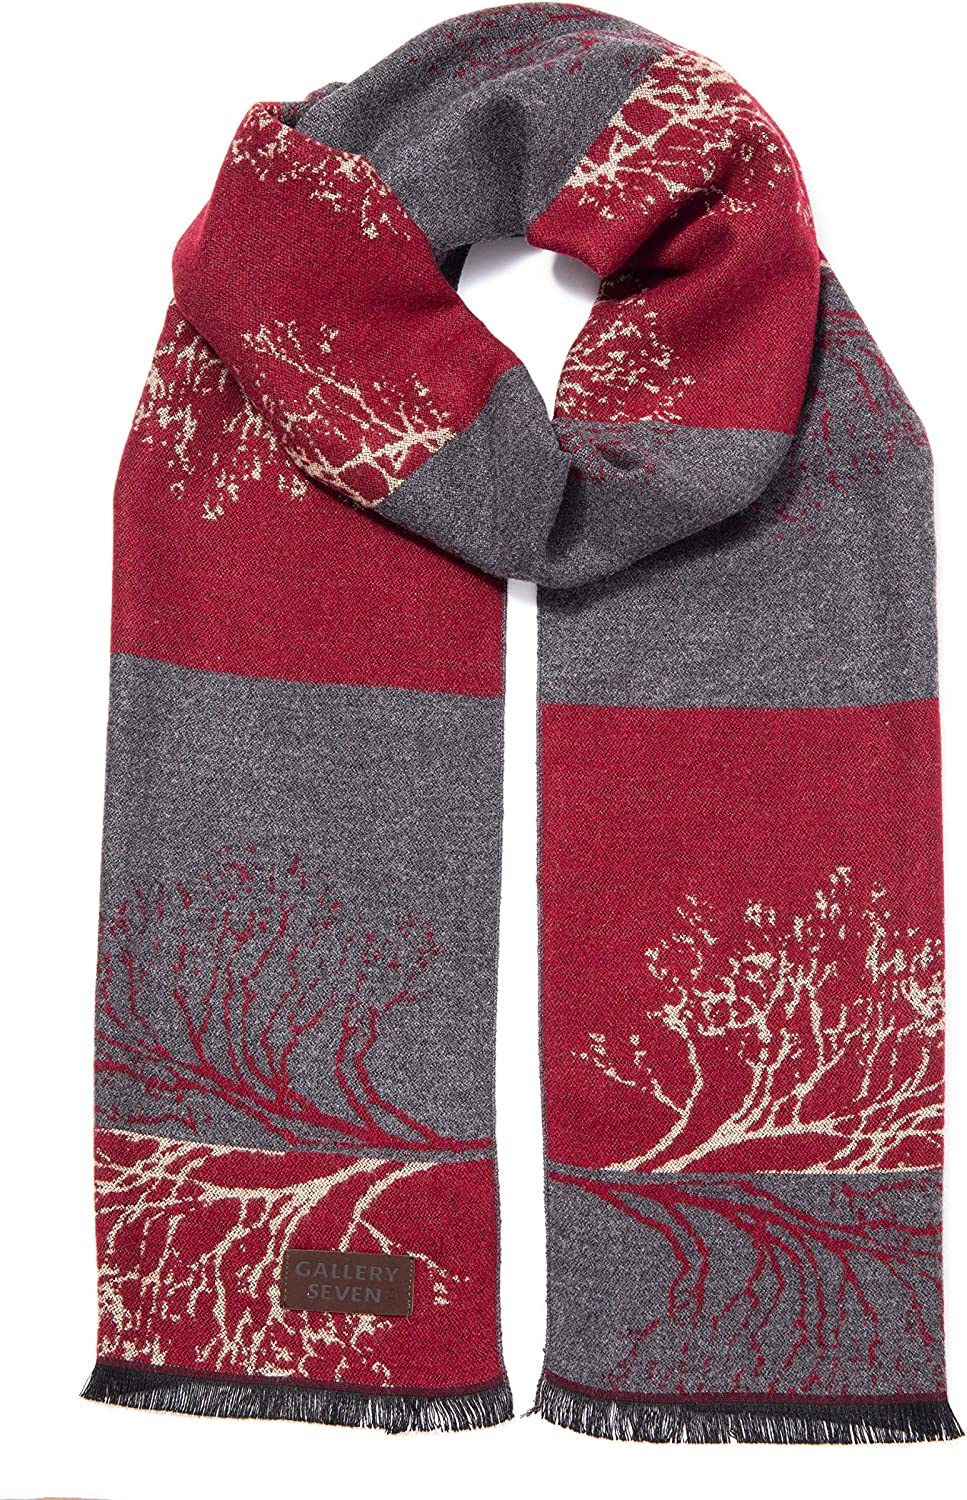 Gallery Seven Winter Scarfs Today's only for Womens Fashion - Free shipping anywhere in the nation Sc Women